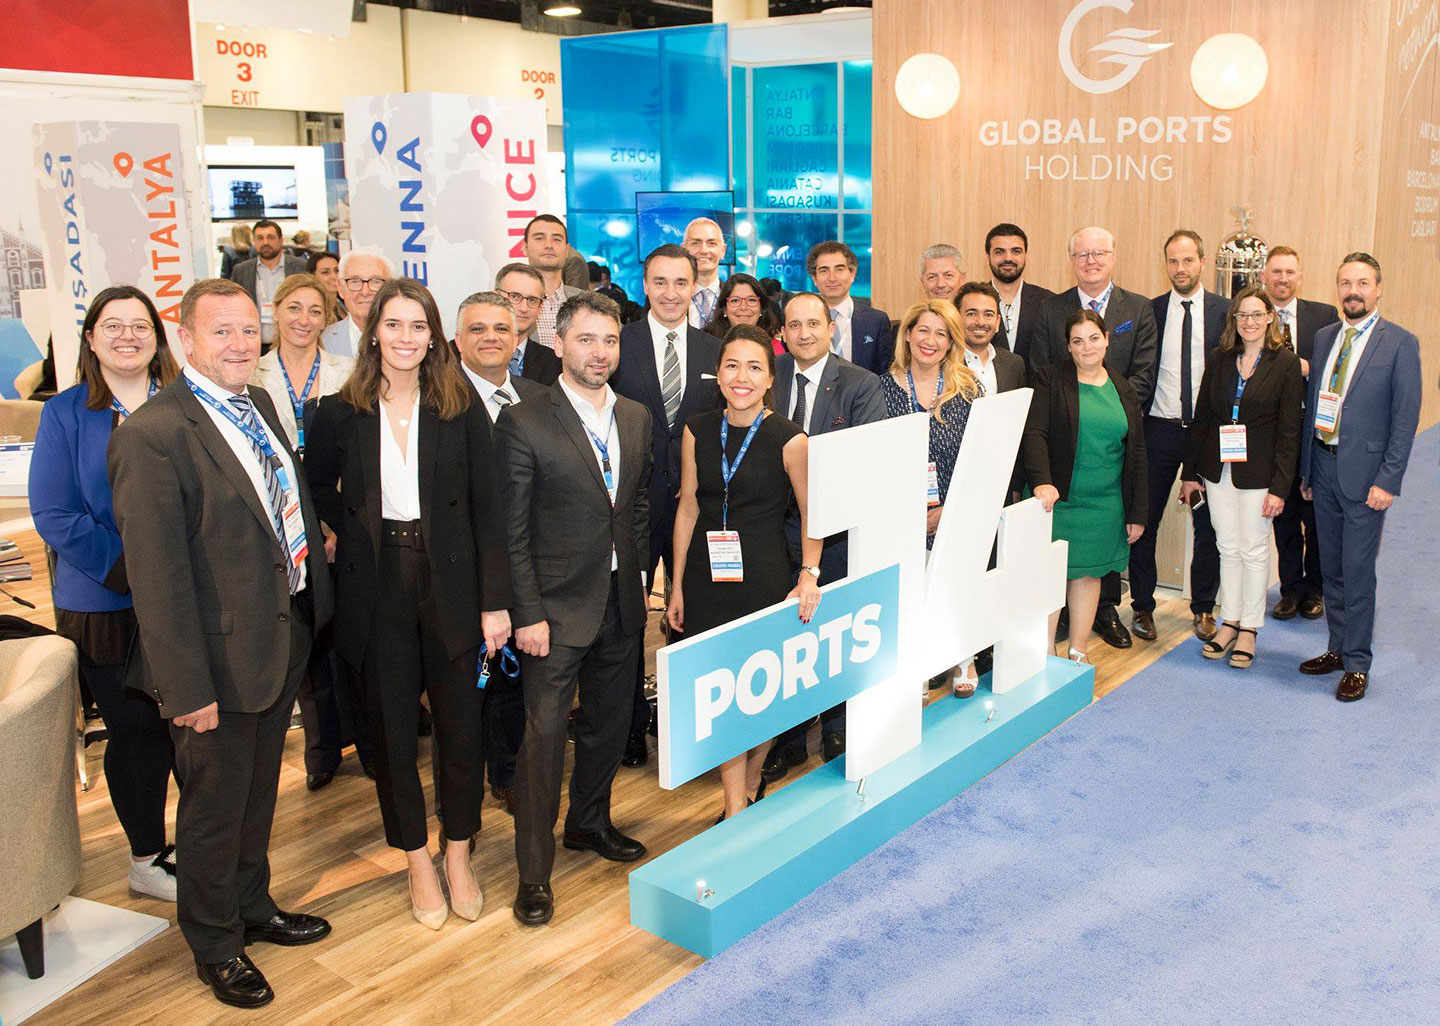 Valletta Cruise Port attends Seatrade Cruise Global